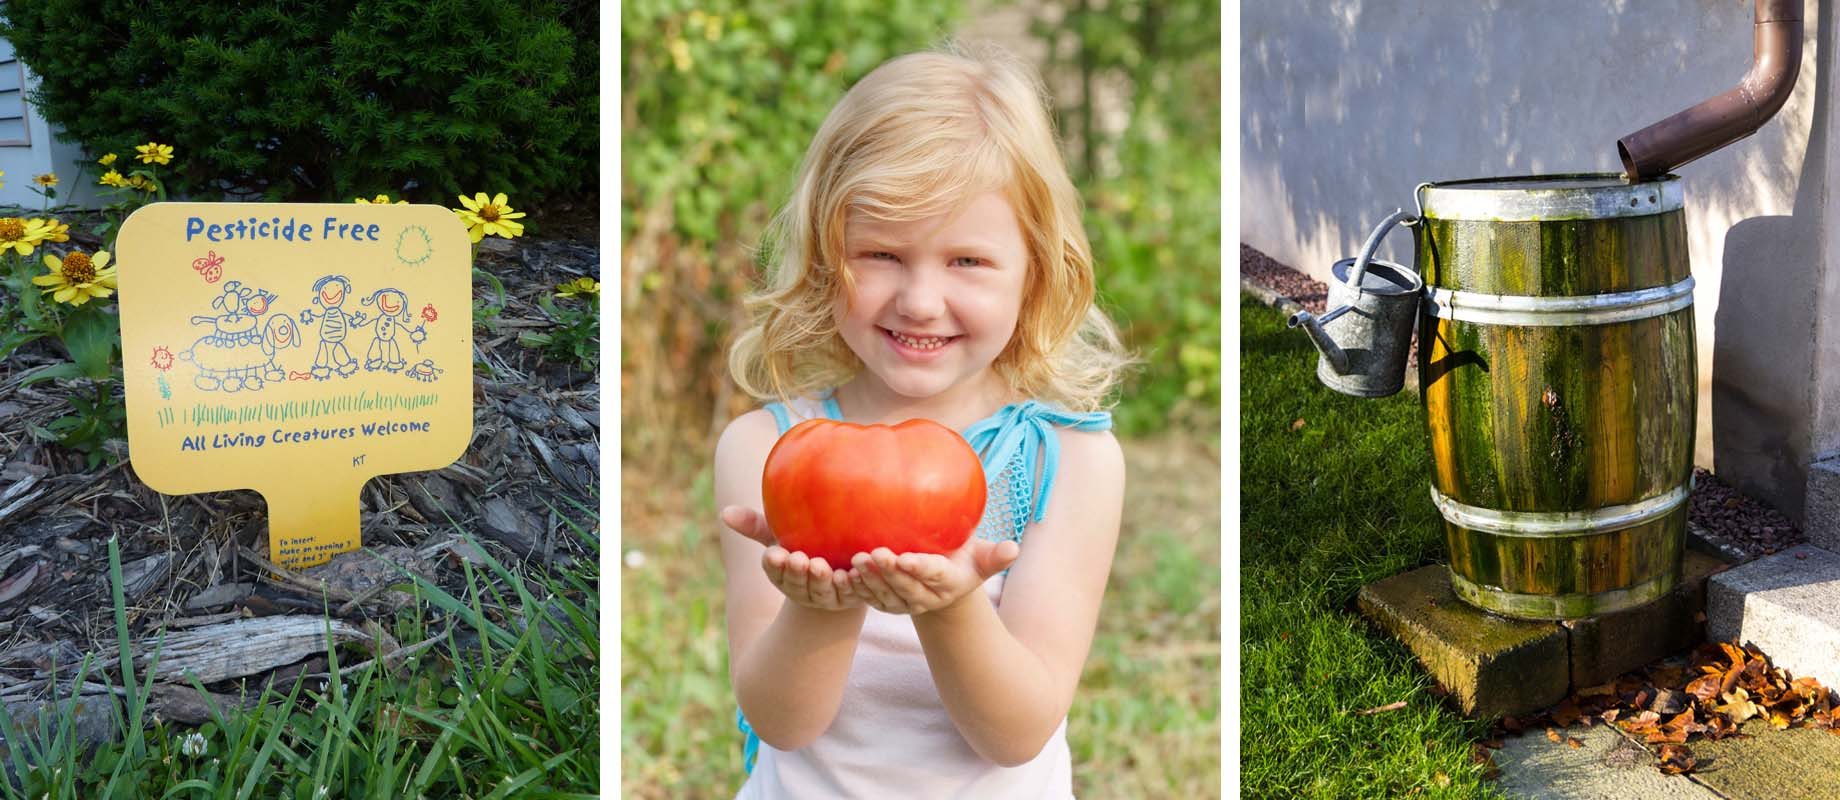 Pesticide free grass sign, a little girls holds a tomato, and a rainbarrel. All sustainable.